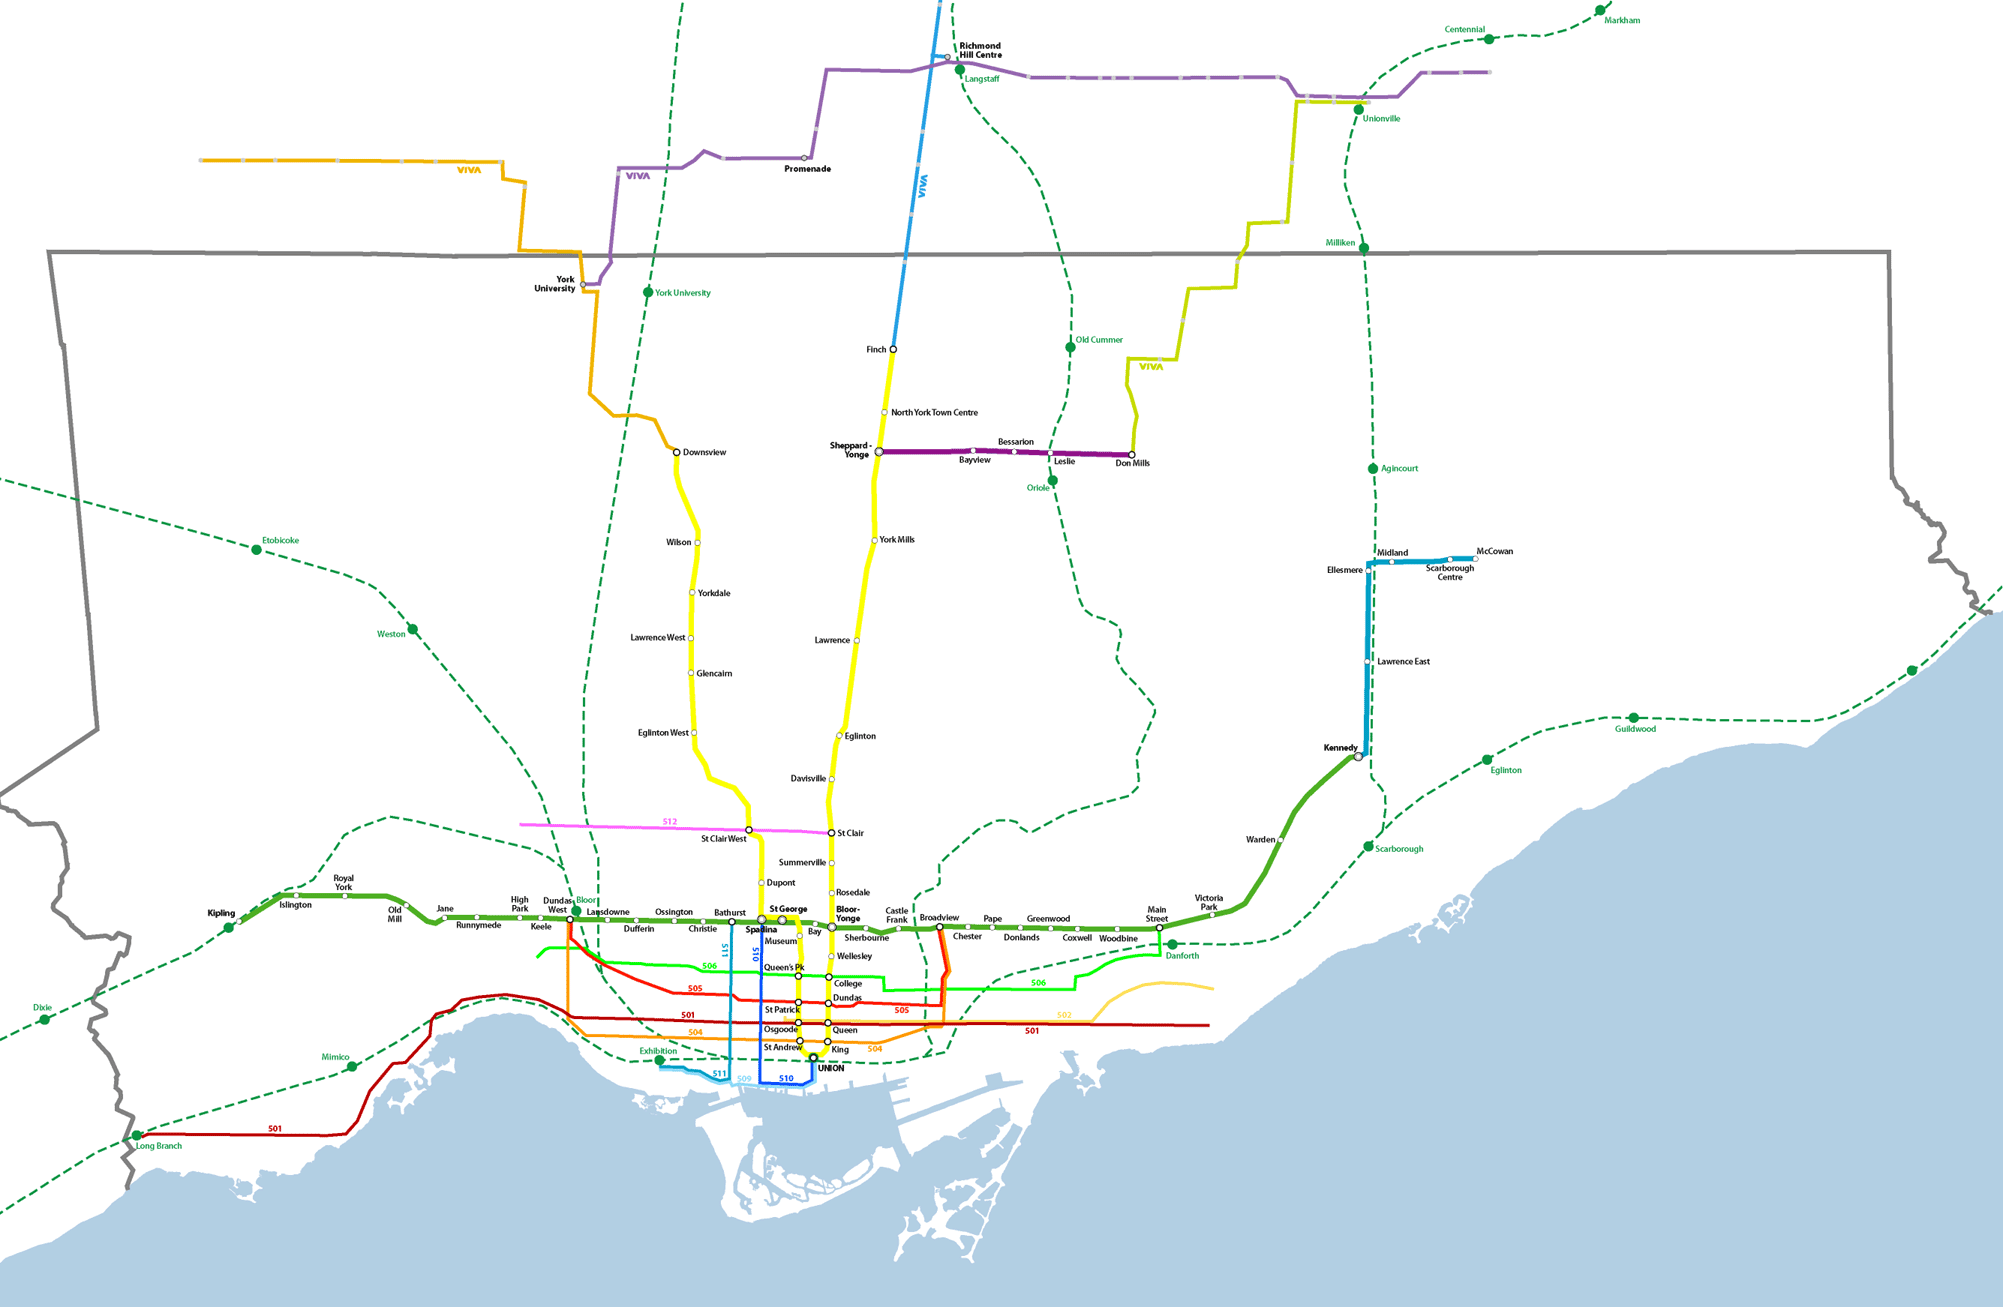 Toronto Subway Map With Streets.Bricoleurbanism Toronto Transit Map Reimagined